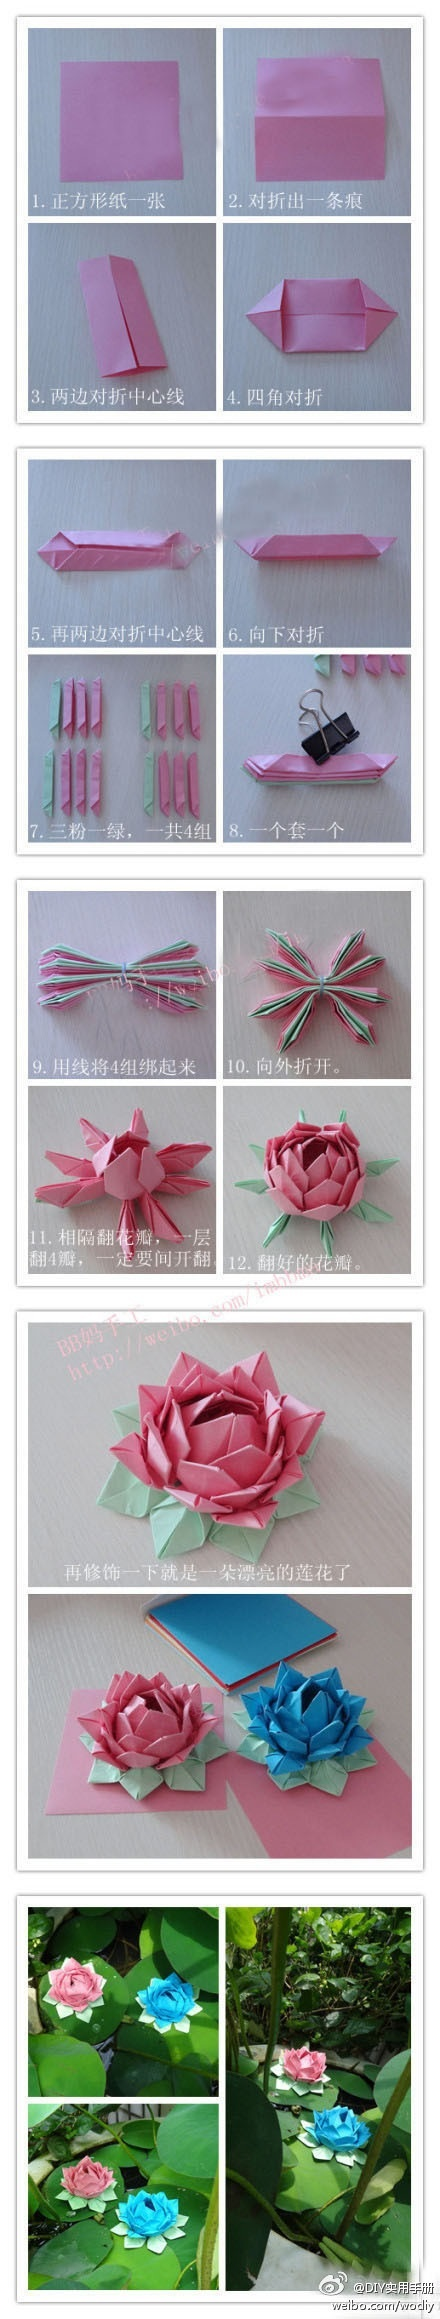 Origami Rose Gp Pinterest Origami Craft And Crafty